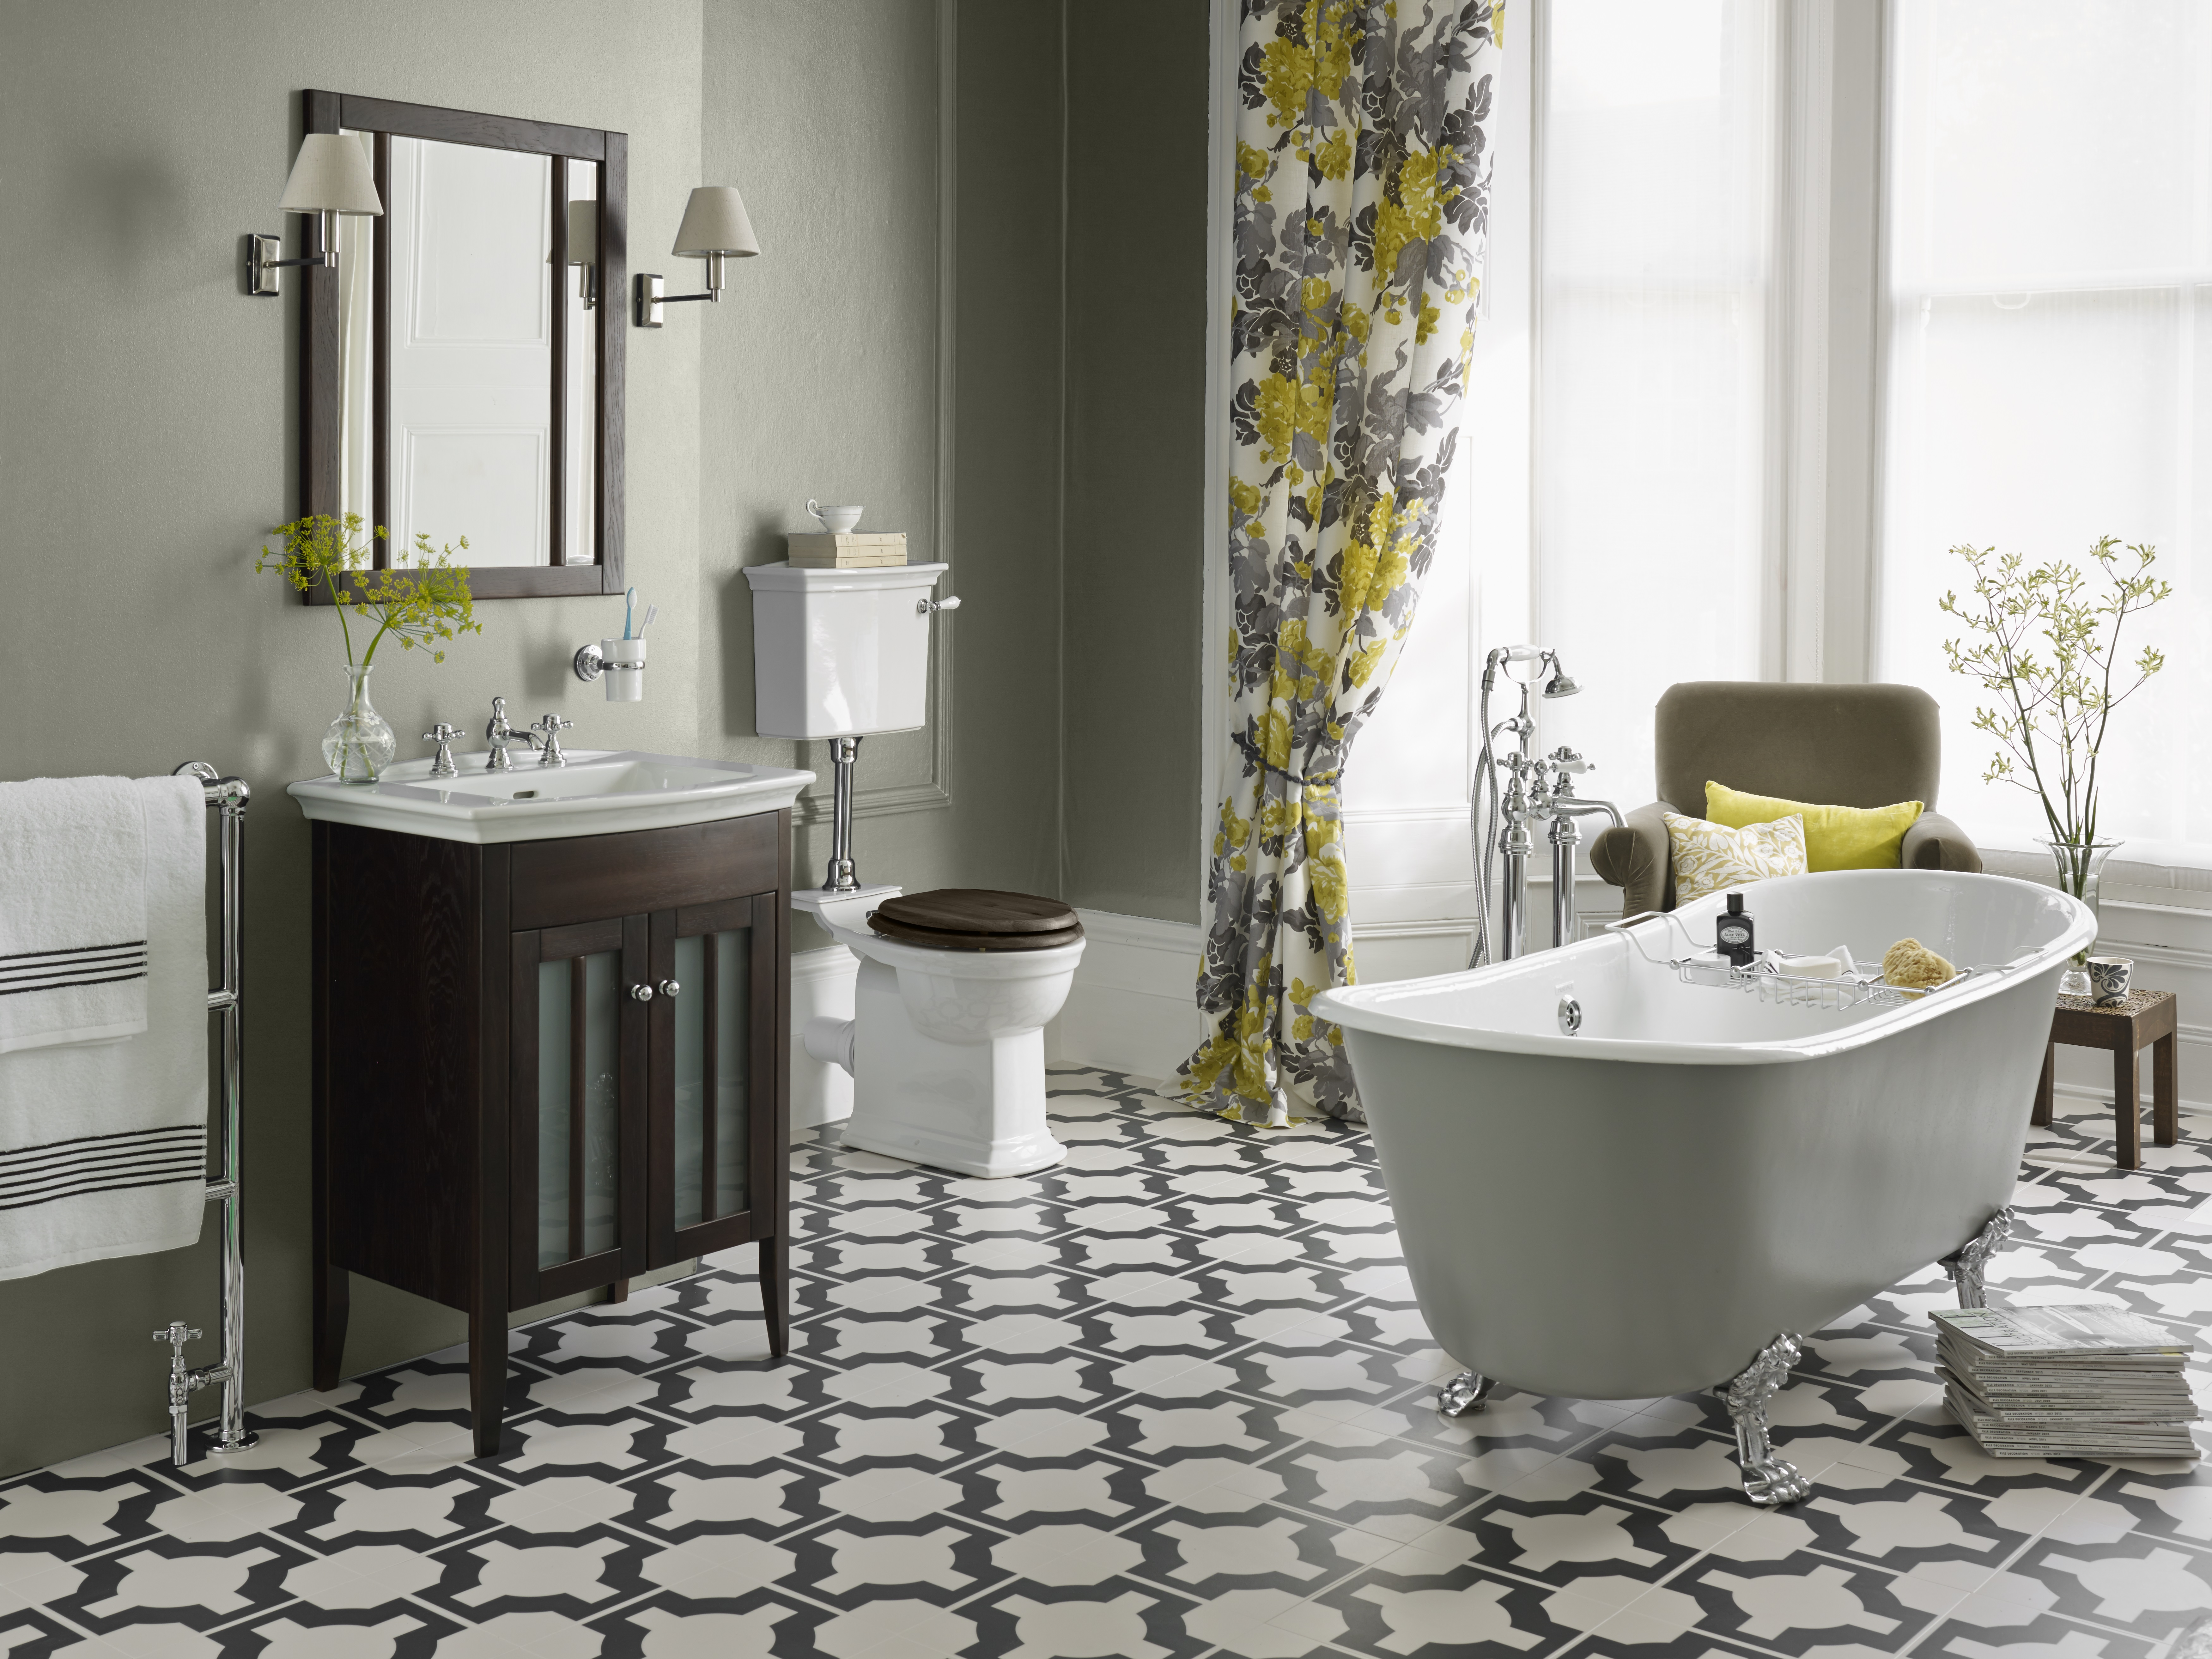 breathtaking showroom bathrooms. We can create anything from a breathtaking technology packed designer  bathroom to small but perfectly formed en suite or you just drop in buy H V Bathrooms Tiles Visit Our Bathroom Showrooms Dublin